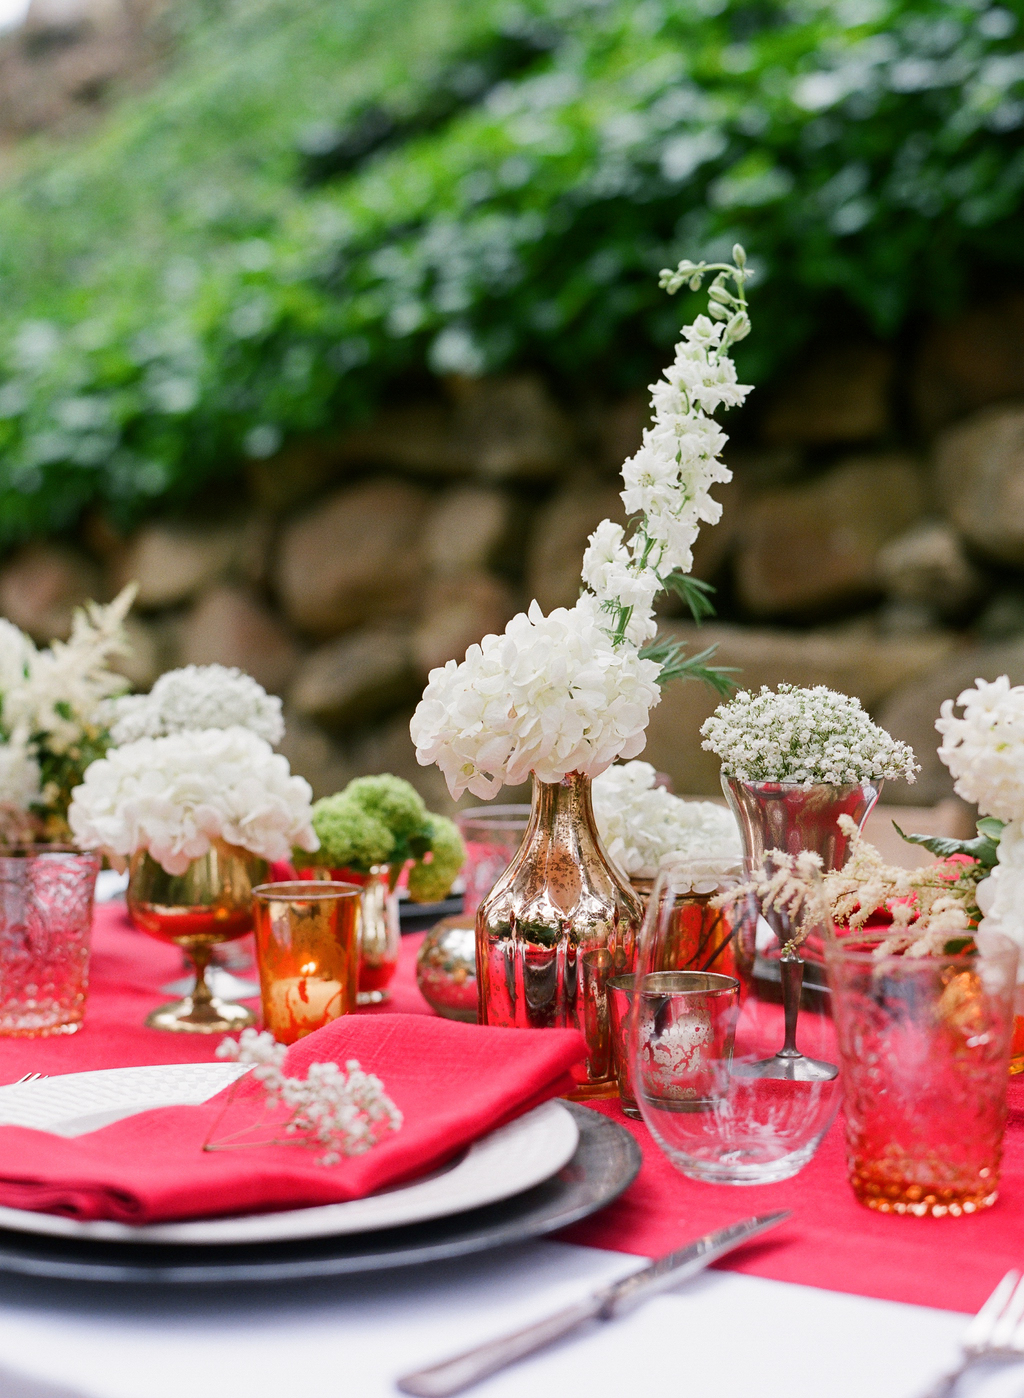 Styled-wedding-santa-barbara-chic-beaux-arts-photographie-italian-bohemian-wedding-venue-table-setting-red-white-flowers-antique-glass-035.full